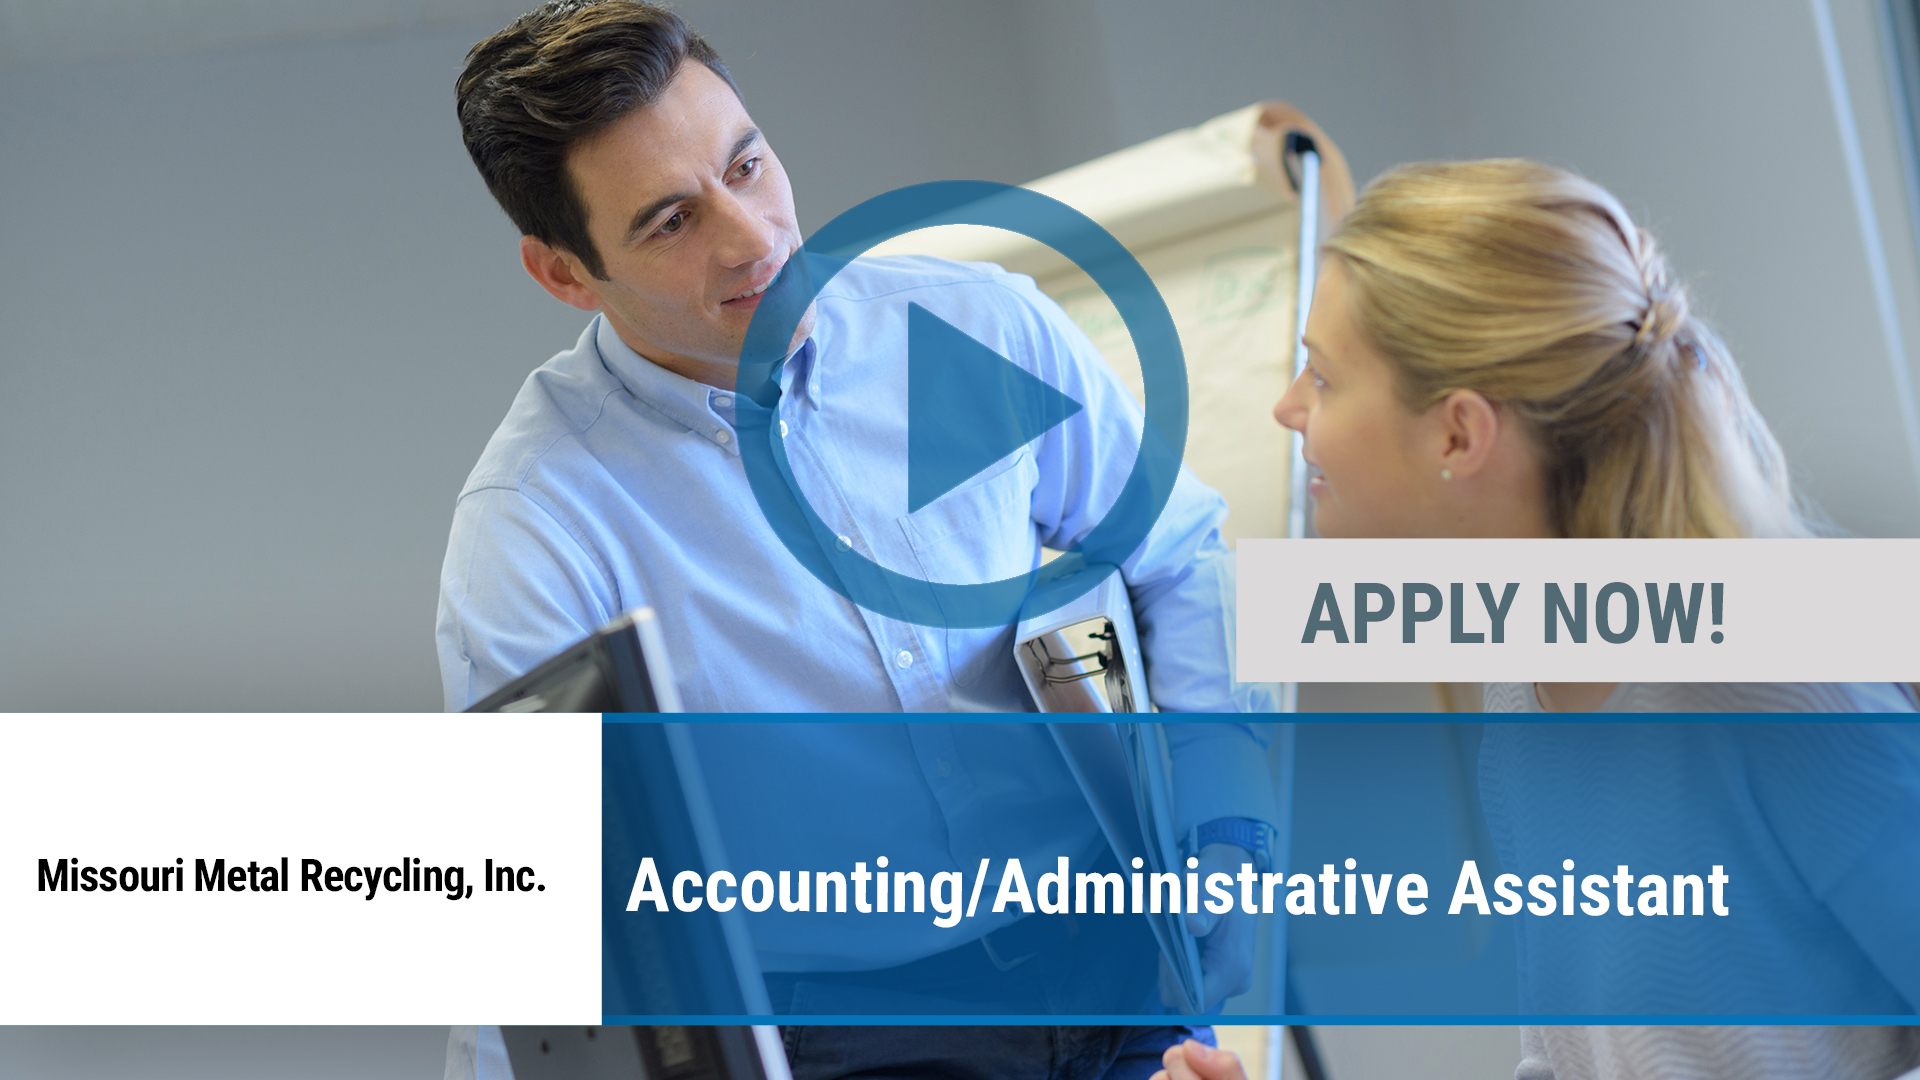 Watch our careers video for available job opening Accounting_Administrative Assistant in Joplin, MO